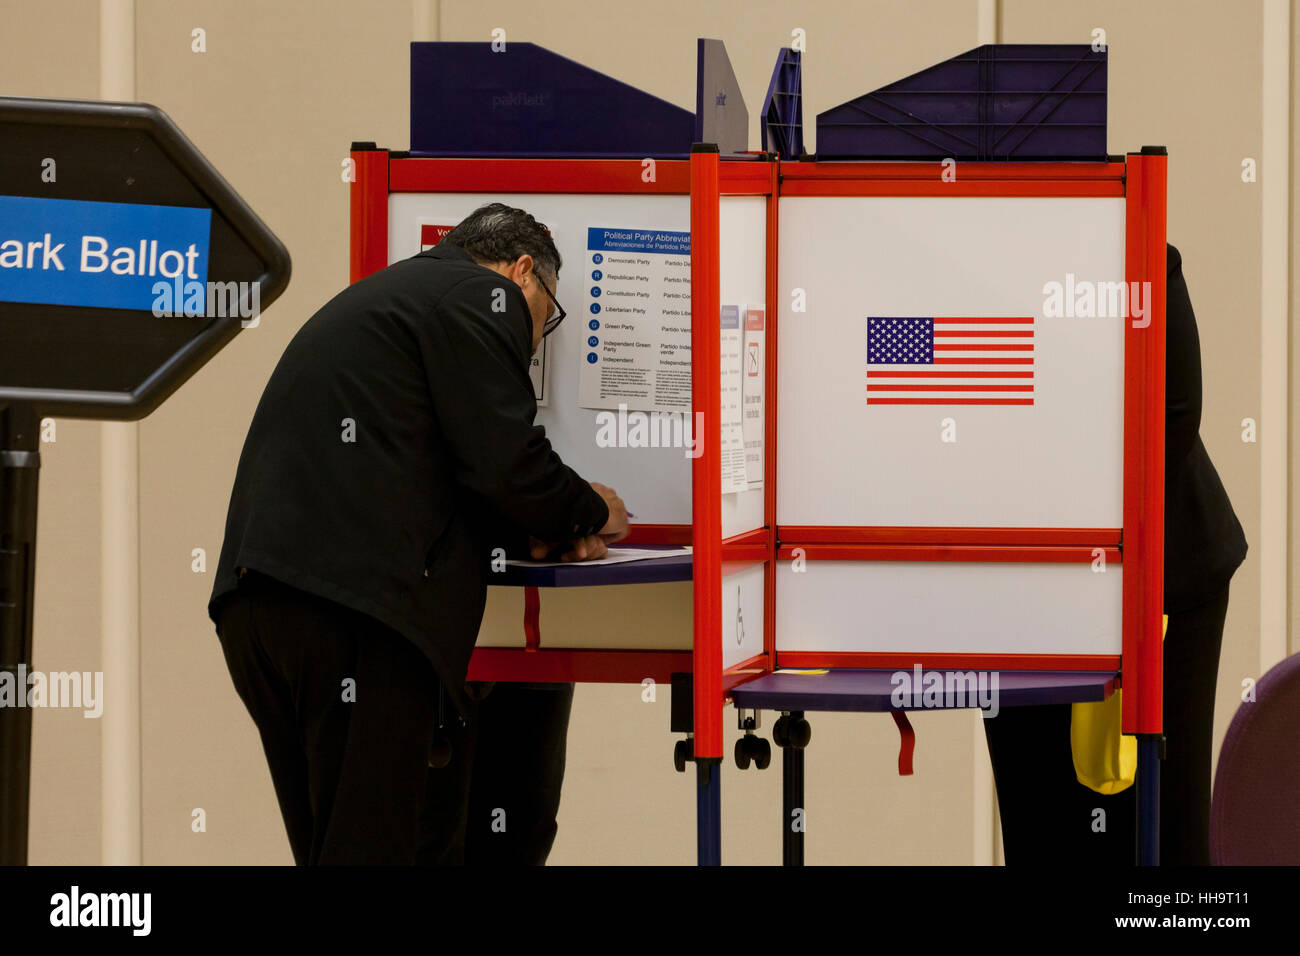 Man casting vote at ballot box during 2016 general elections - Arlington, Virginia USA - Stock Image